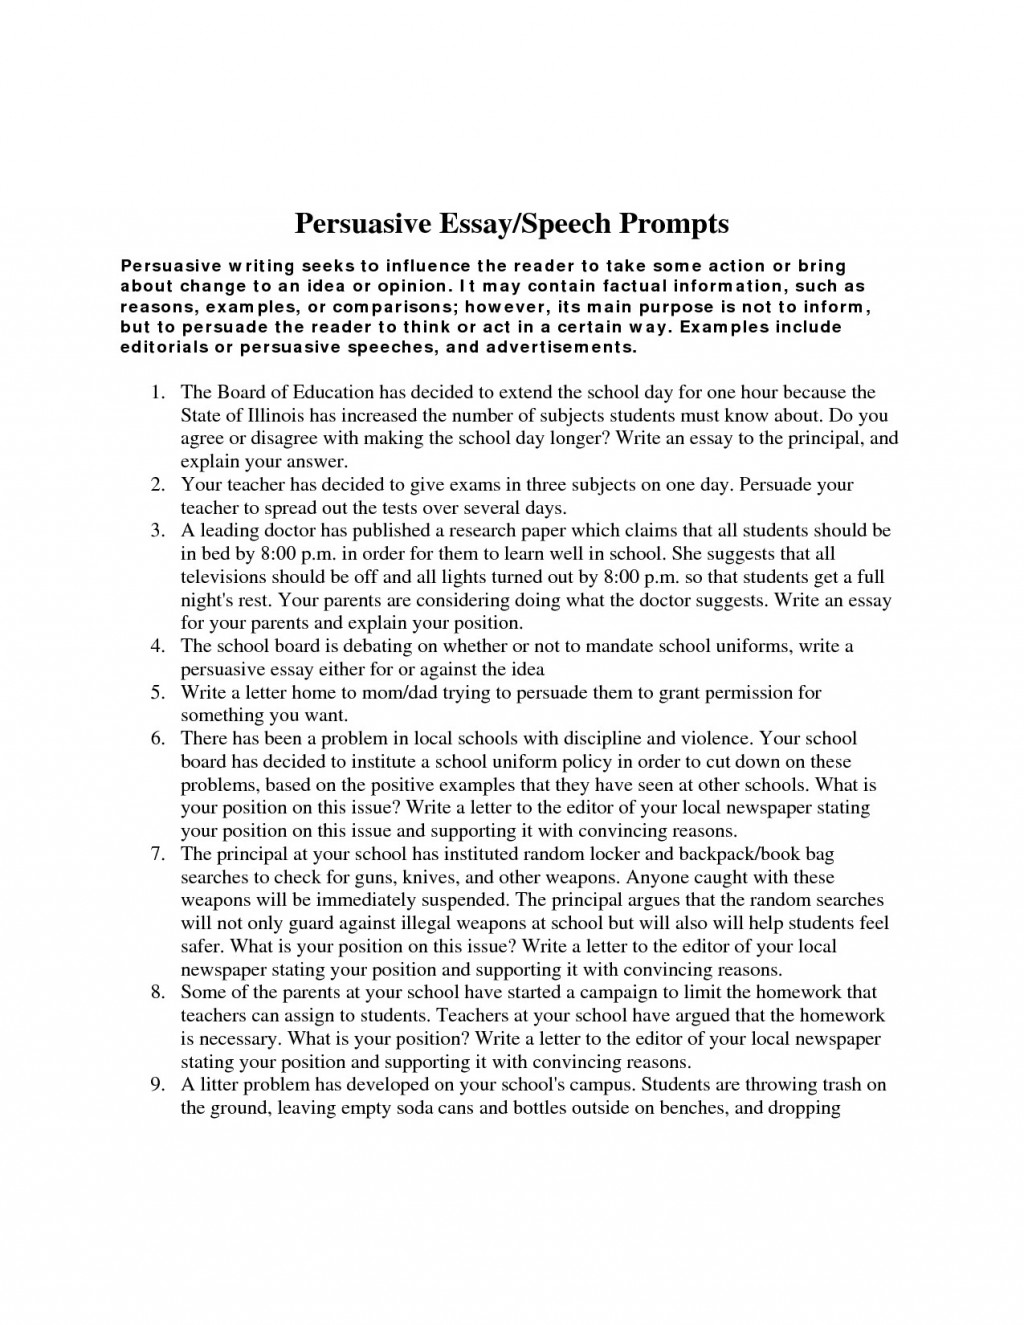 008 Essay Example Persuasive Prompts Amazing Ideas Thesis For Hamlet 7th Graders Narrative 4th Grade Large